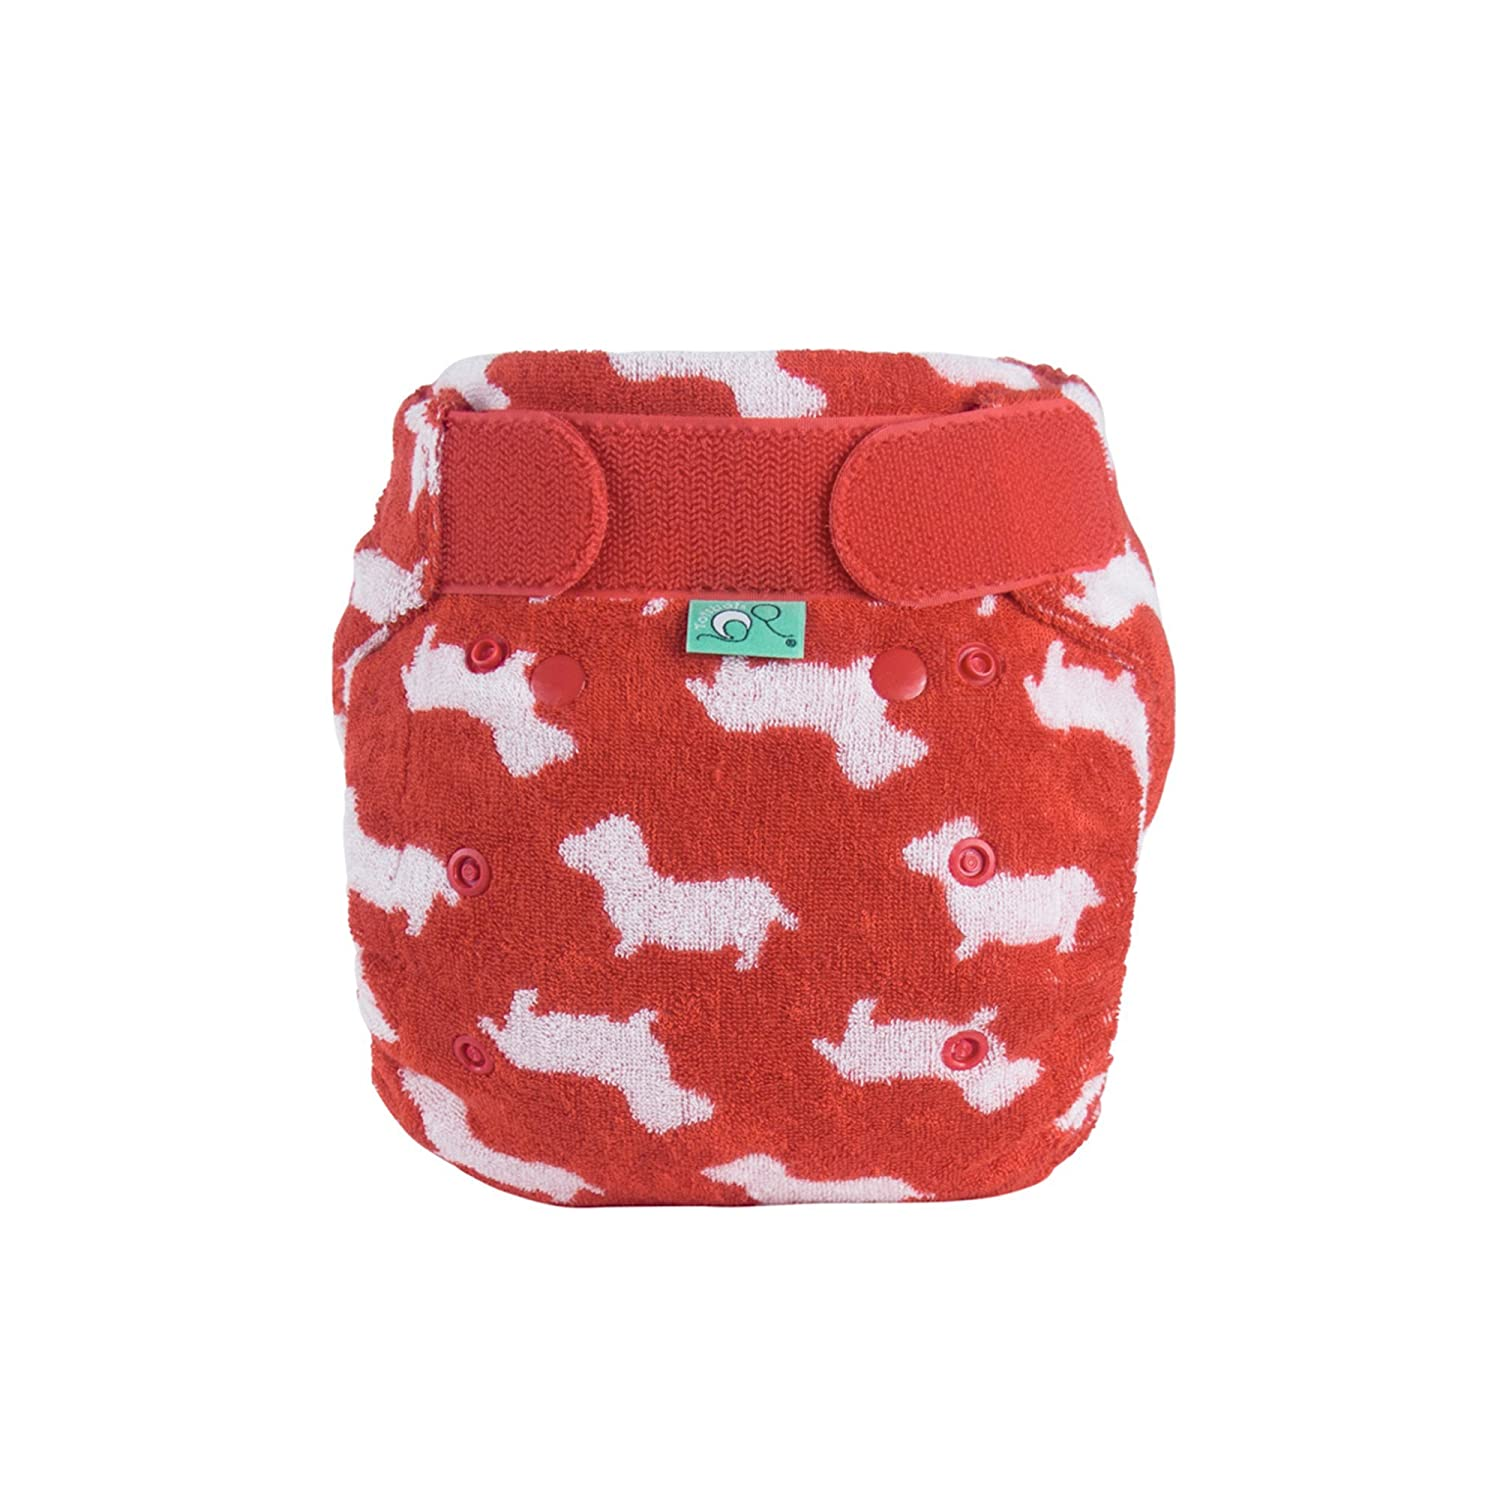 TotsBots Bamboozle Washable Reusable Nappy, Size 2, 9 to 35 lbs, Scamp Design Tots Bots Limited 5060510761902